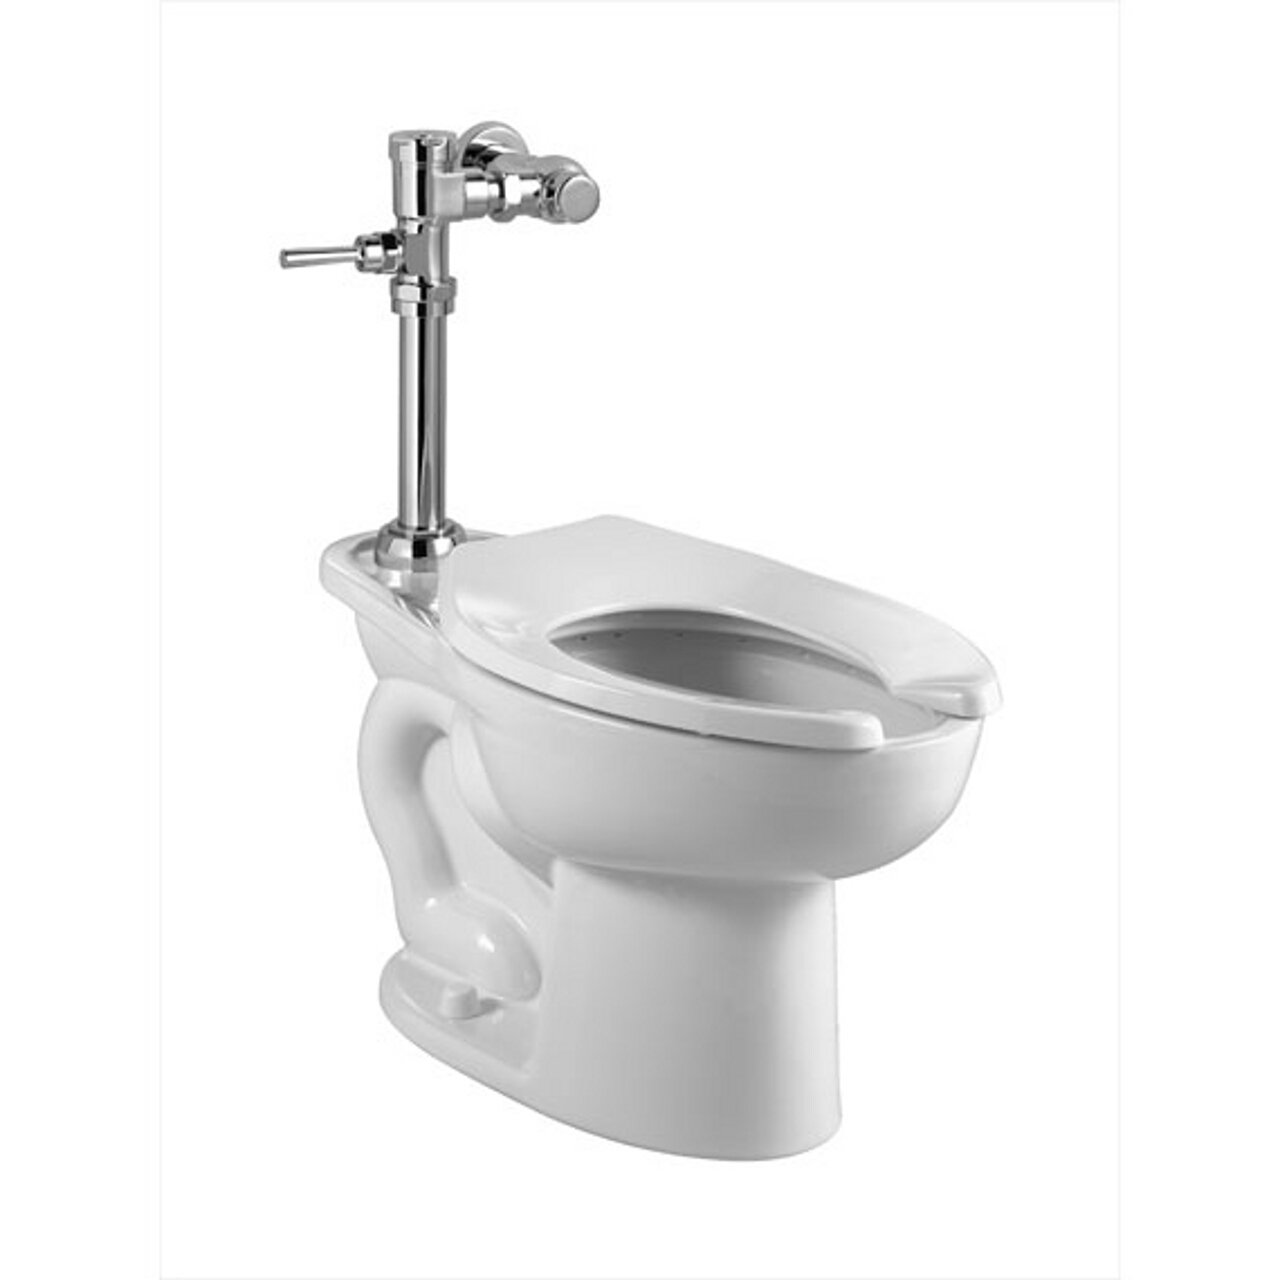 Top 5 Best ADA Toilets Reviews in 2020 3